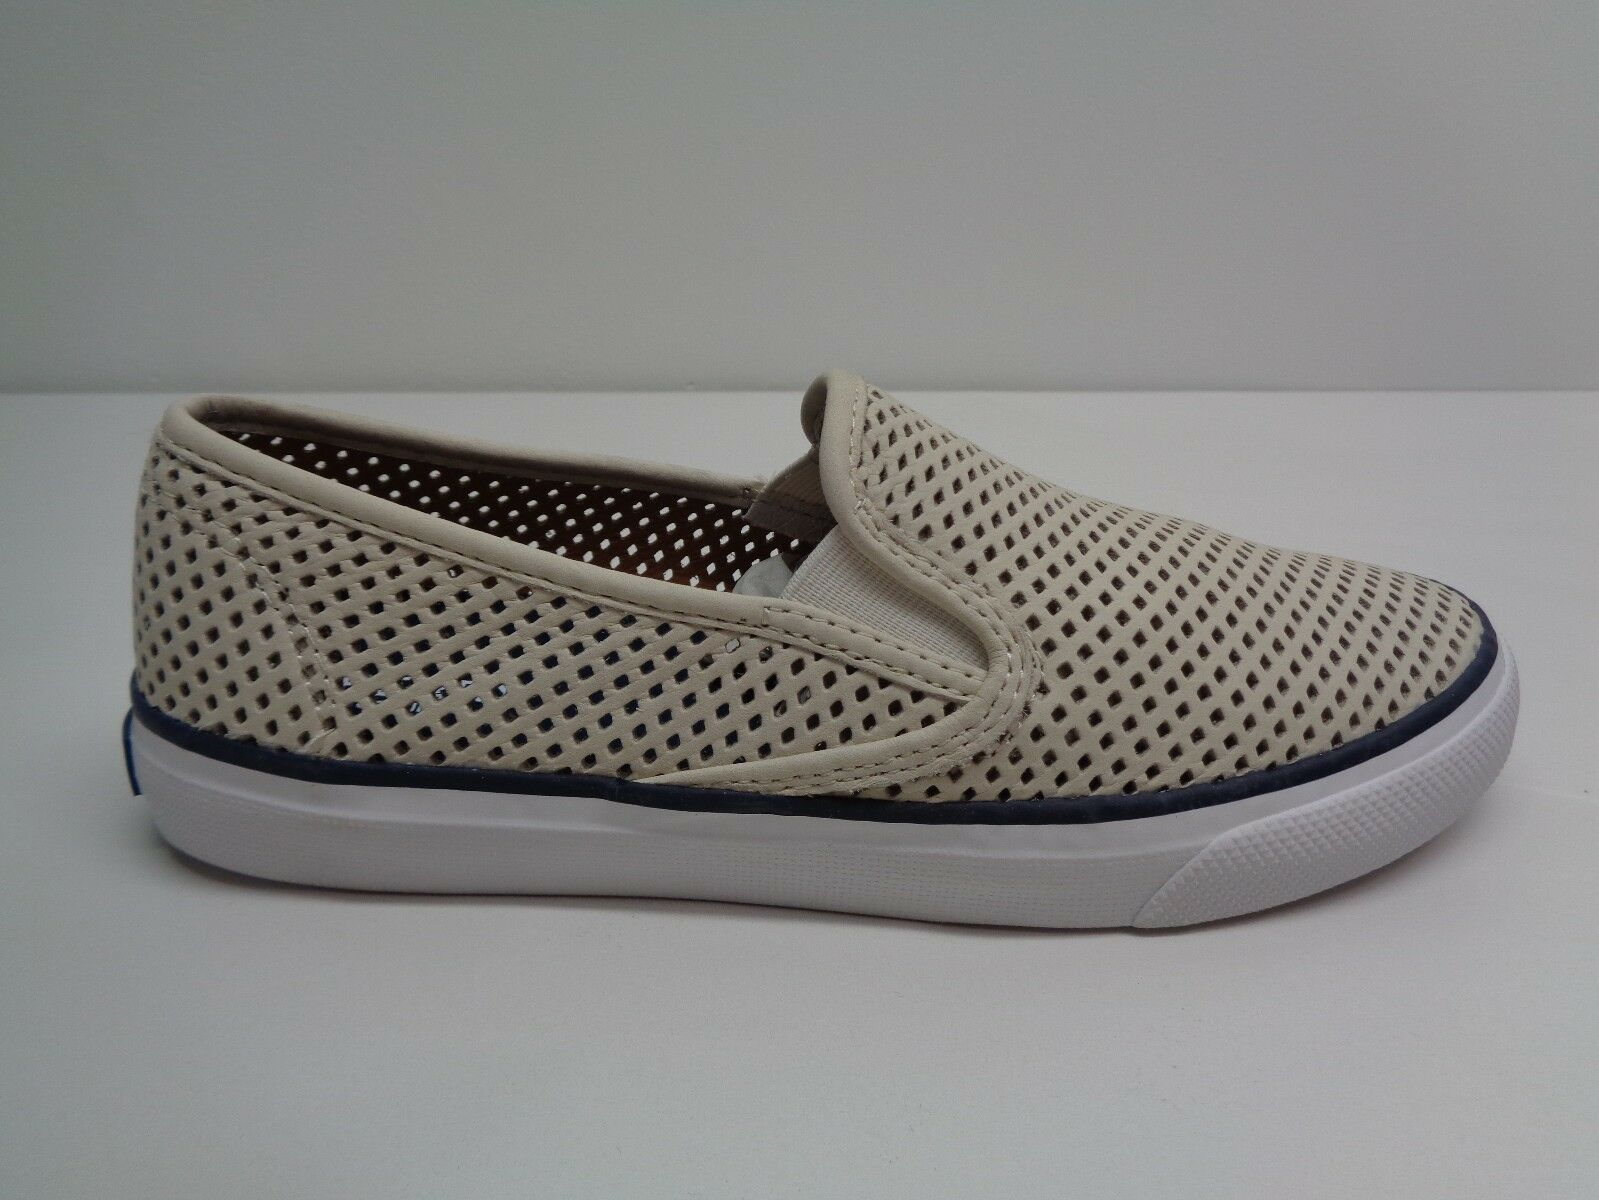 Sperry Size 9 M SEASIDE PERFORATED White Leather Sneakers New Womens shoes